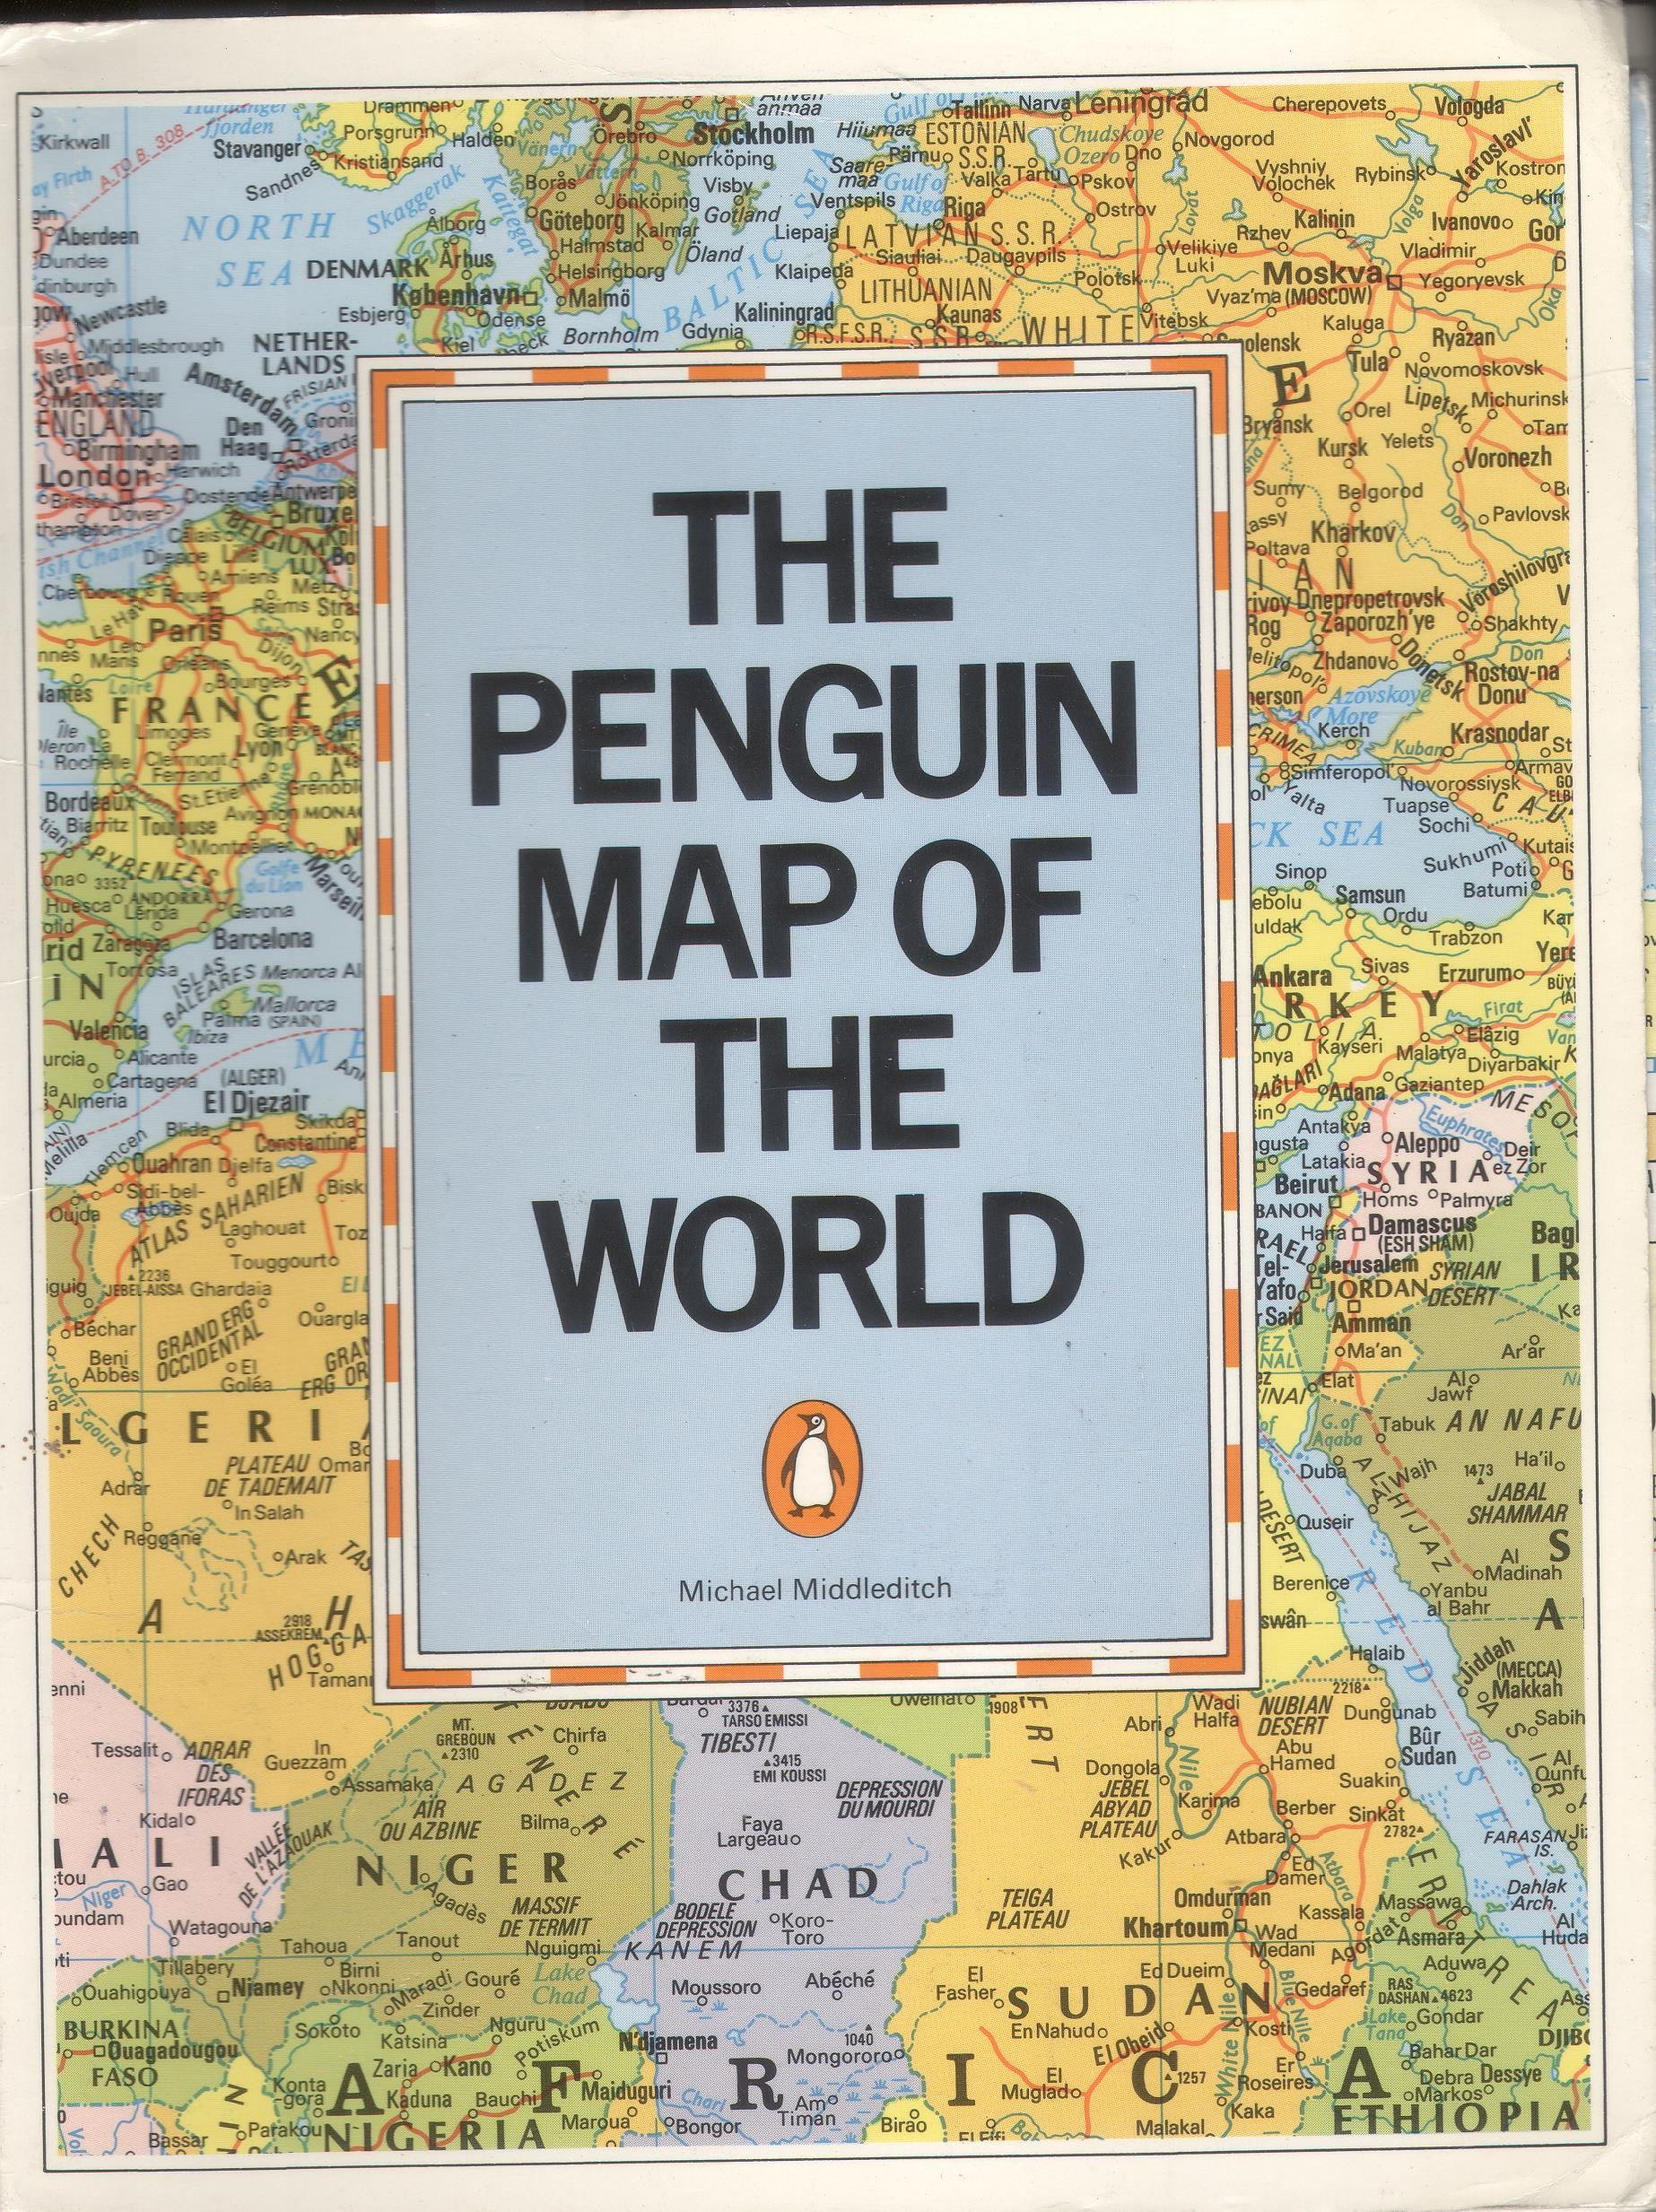 Penguin Map Of The World.Buy The Penguin Map Of The World Book Online At Low Prices In India